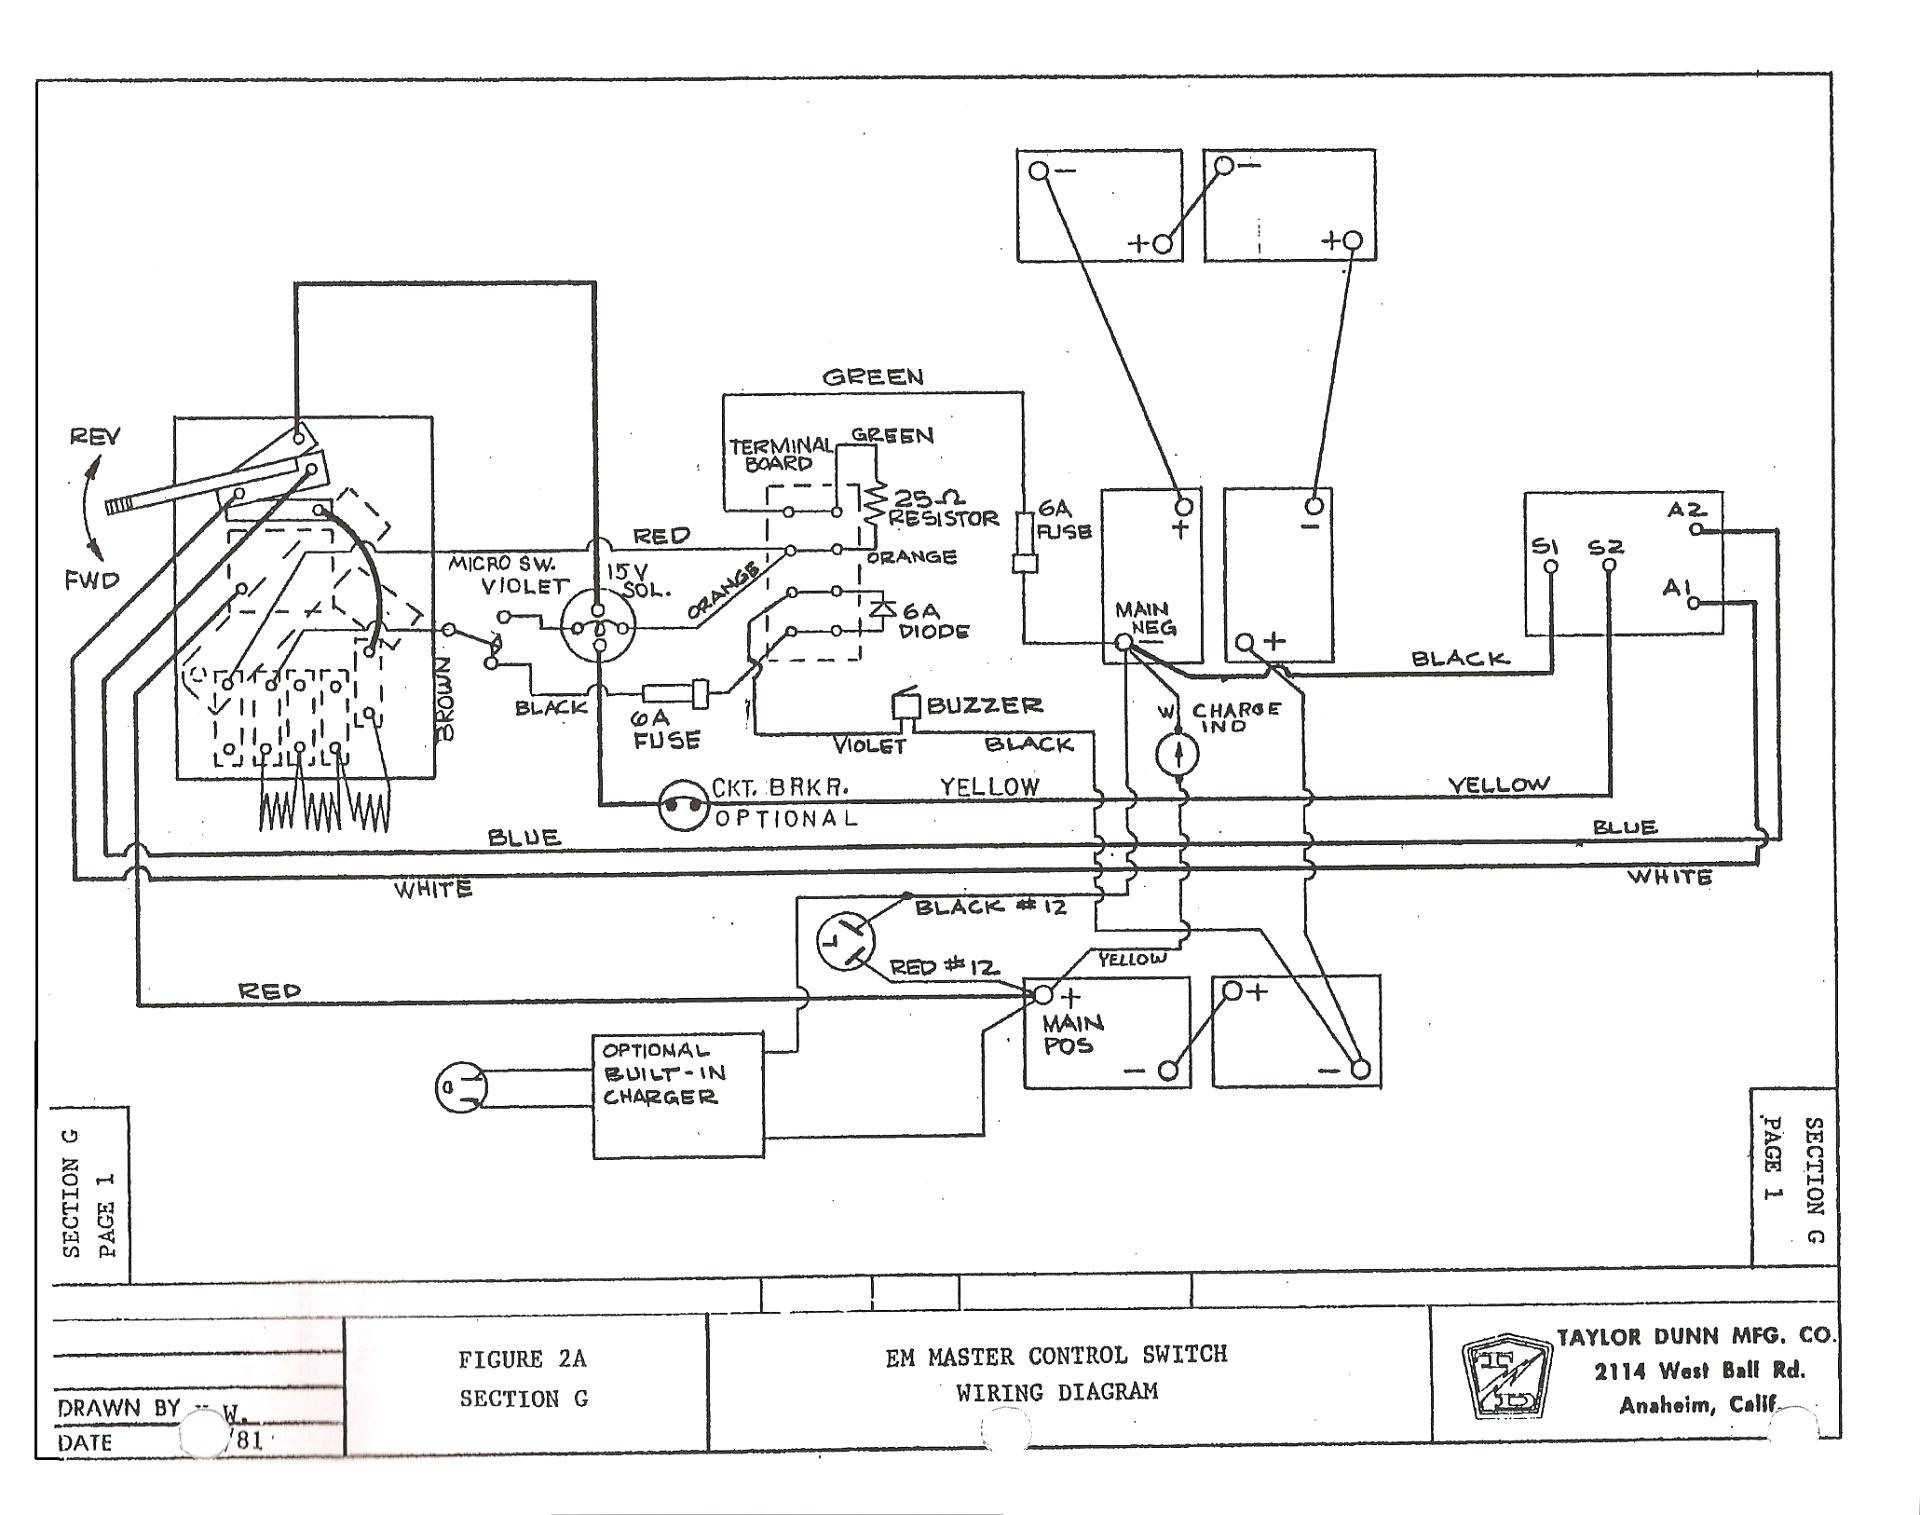 Yamaha Electric Golf Cart Wiring Diagram